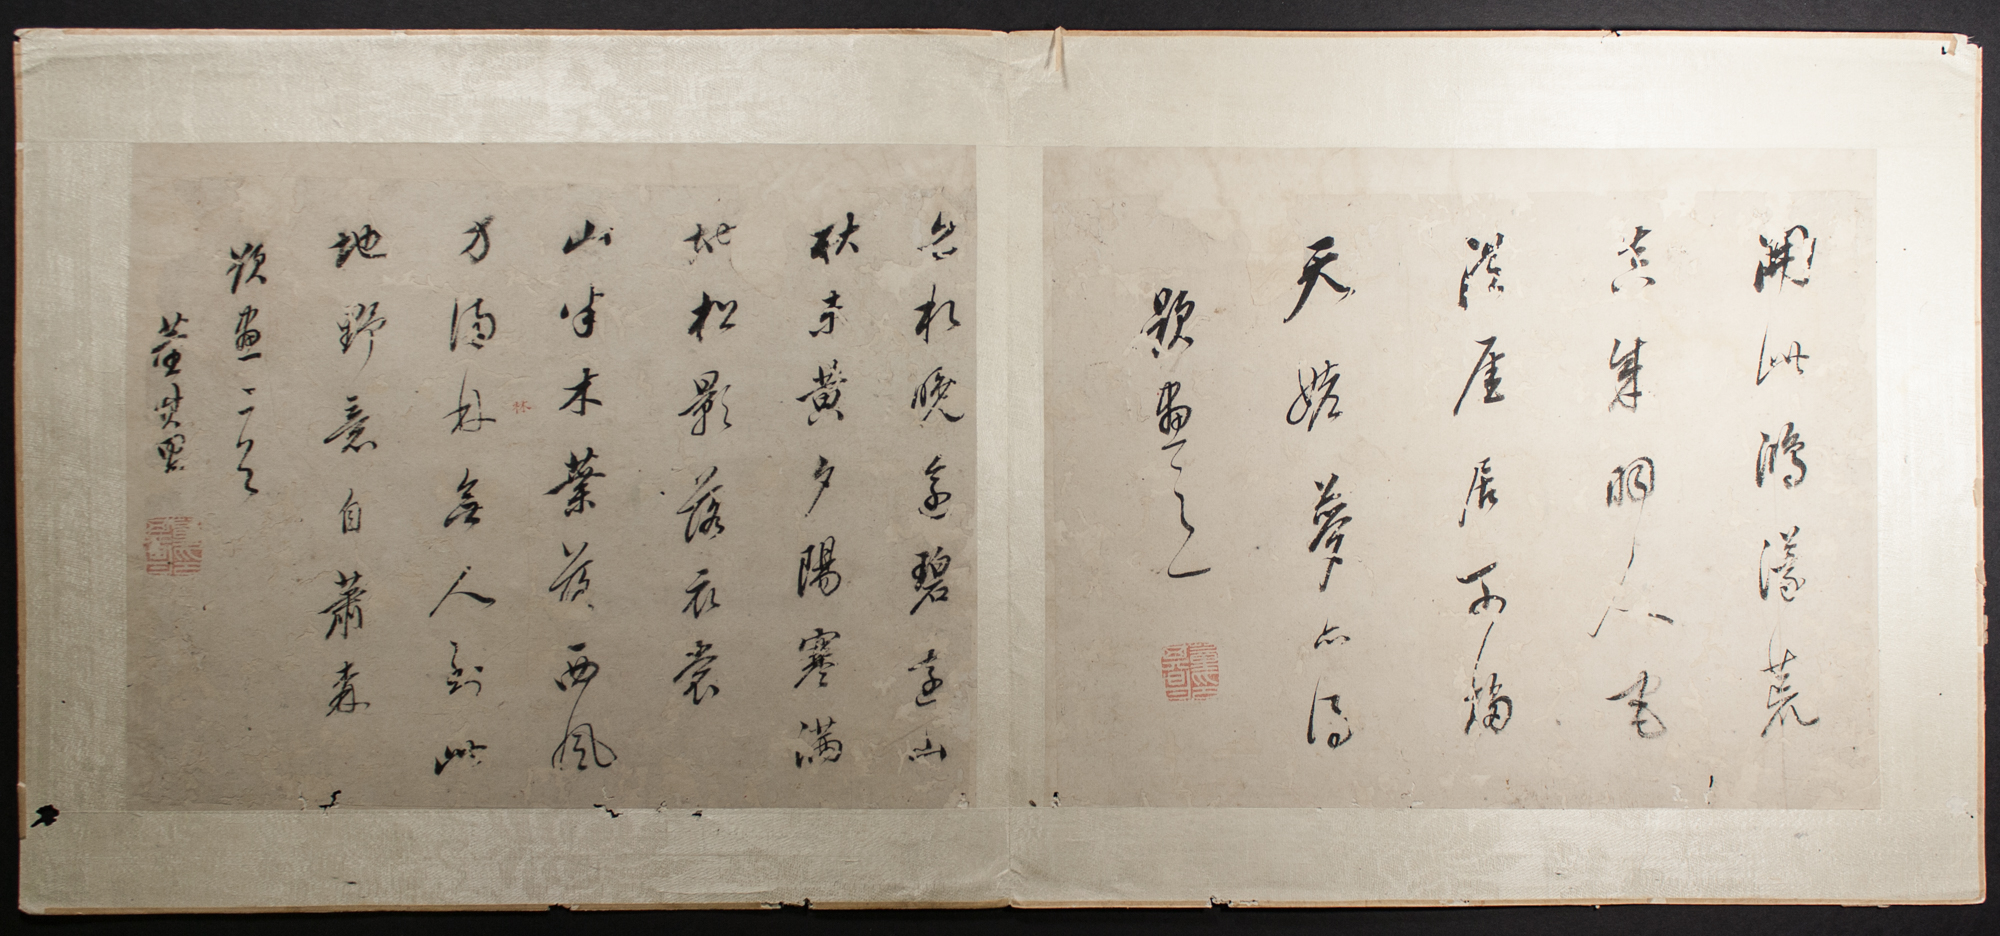 Calligraphy by Dong Qichang